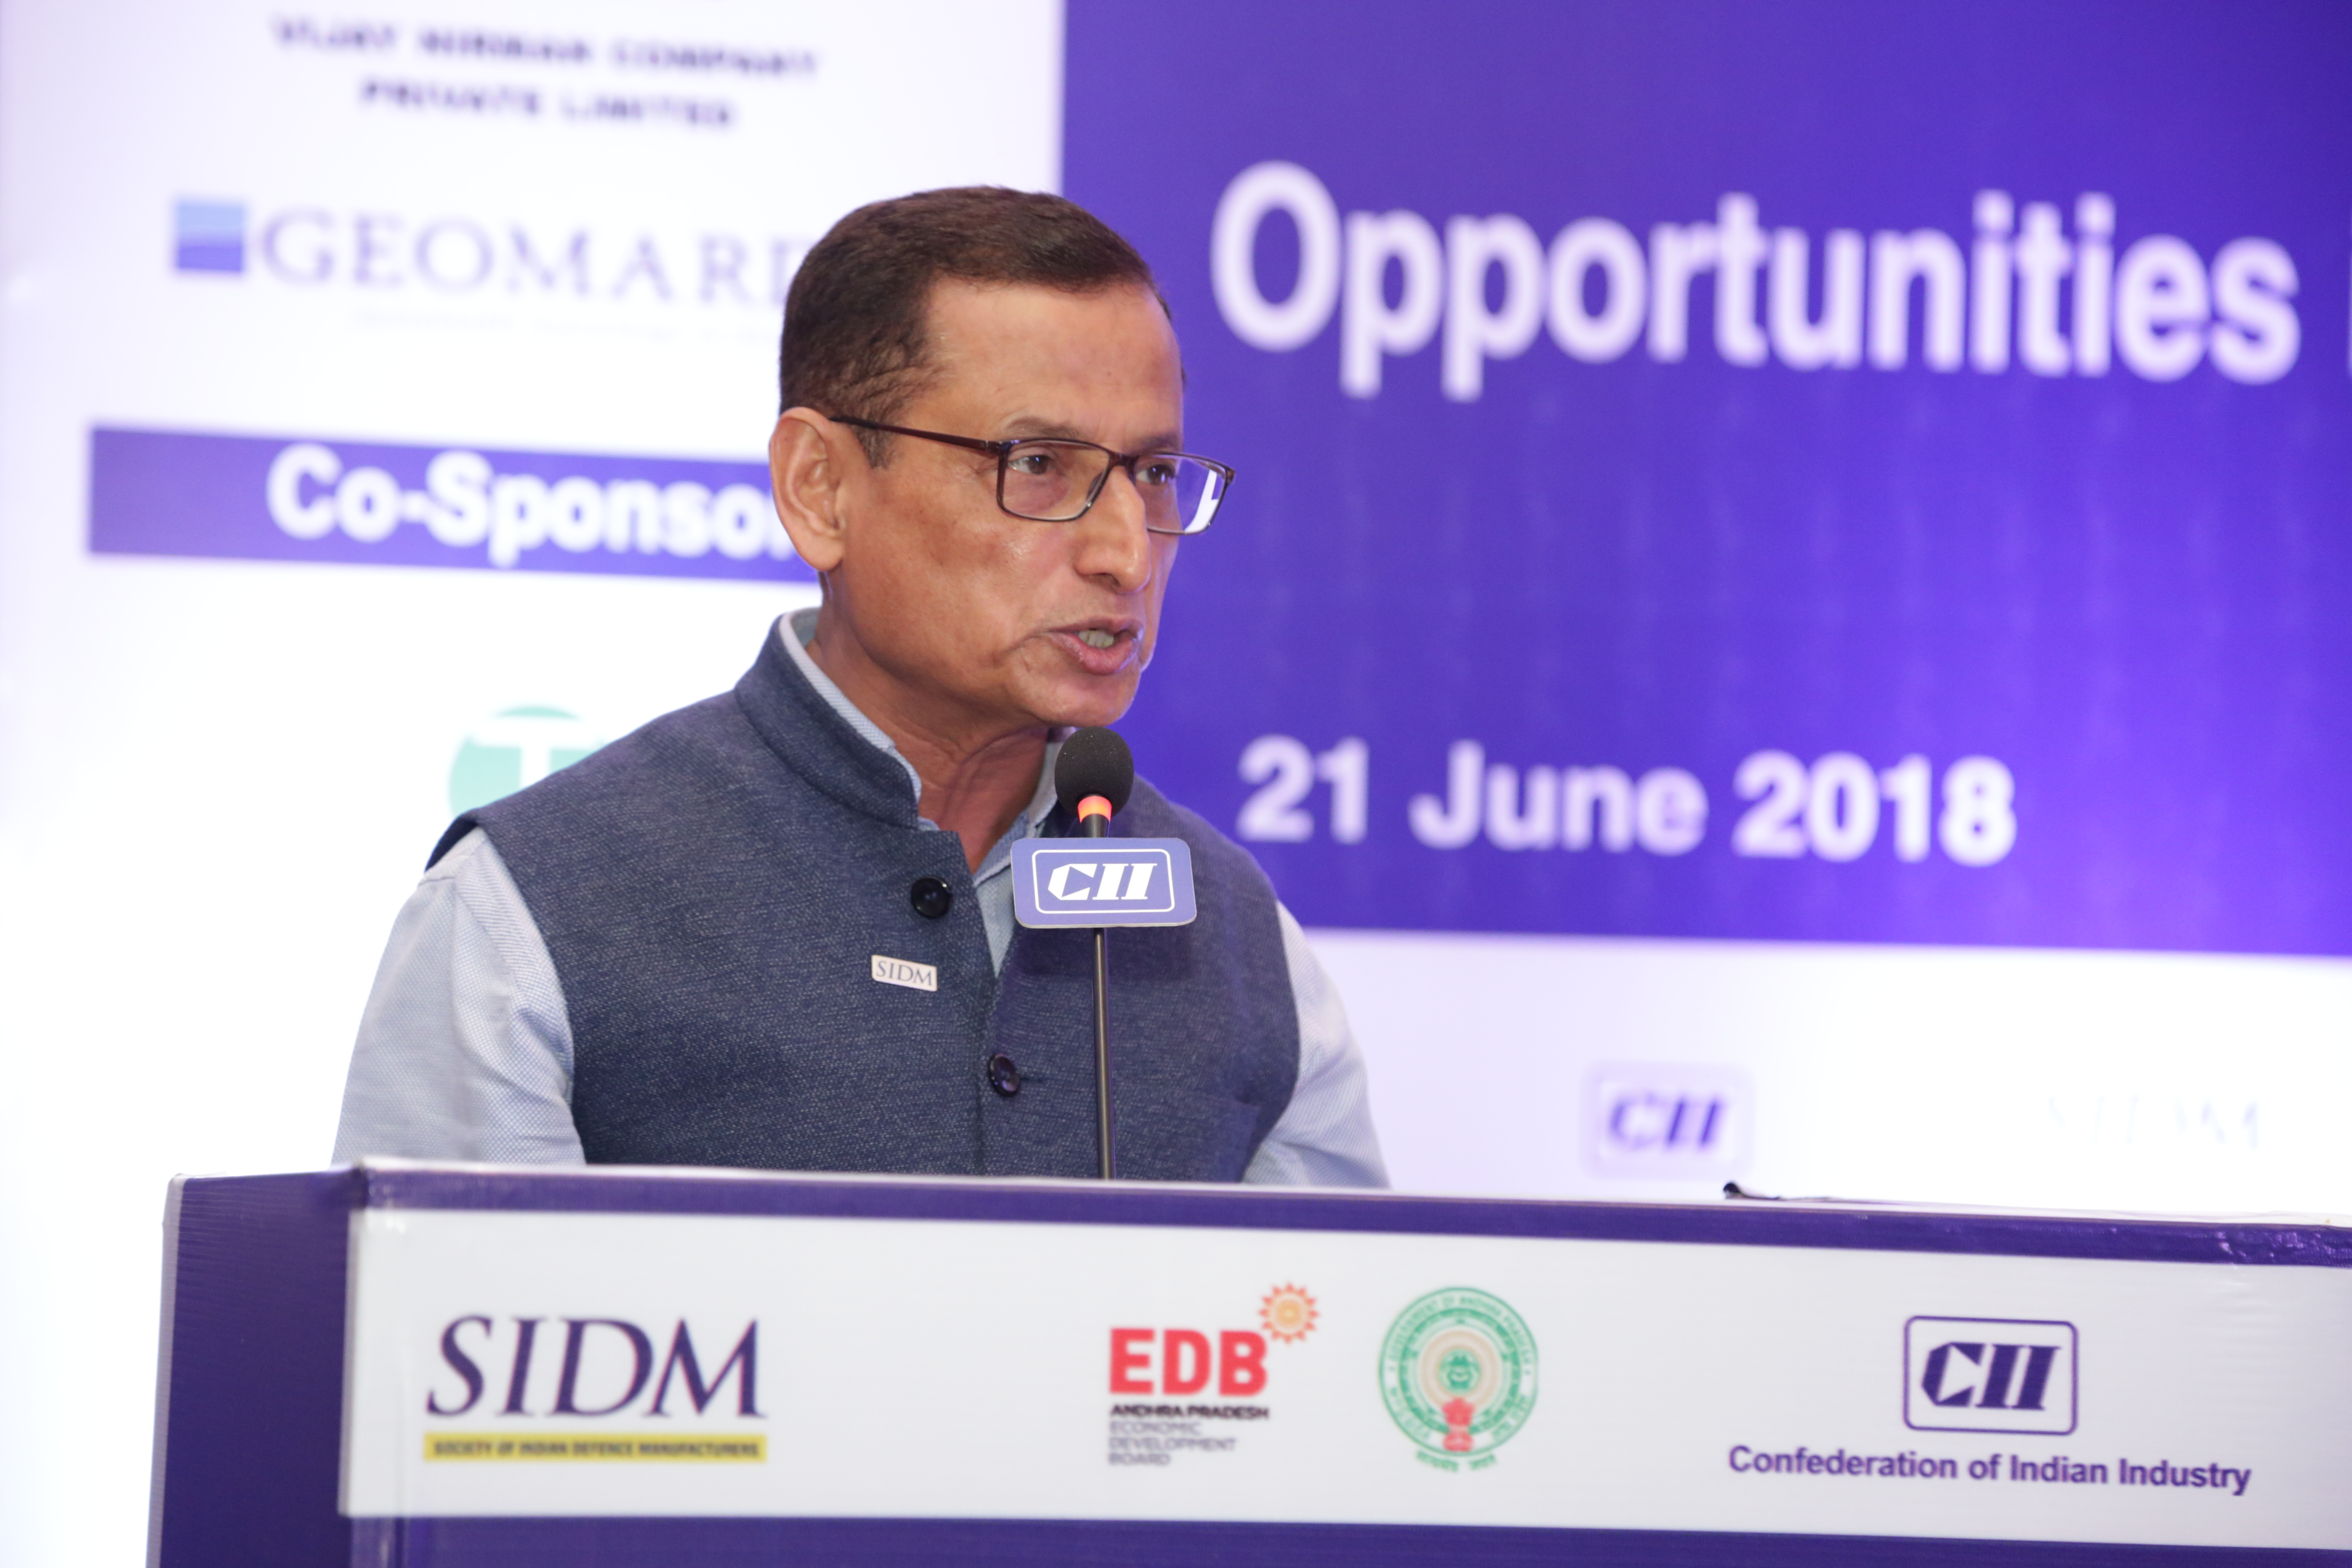 Director General, SIDM addressing the opening session at the Seminar on 'Opportunities in Defence & Aerospace for Industry', Visakhapatnam, 21 June 2018